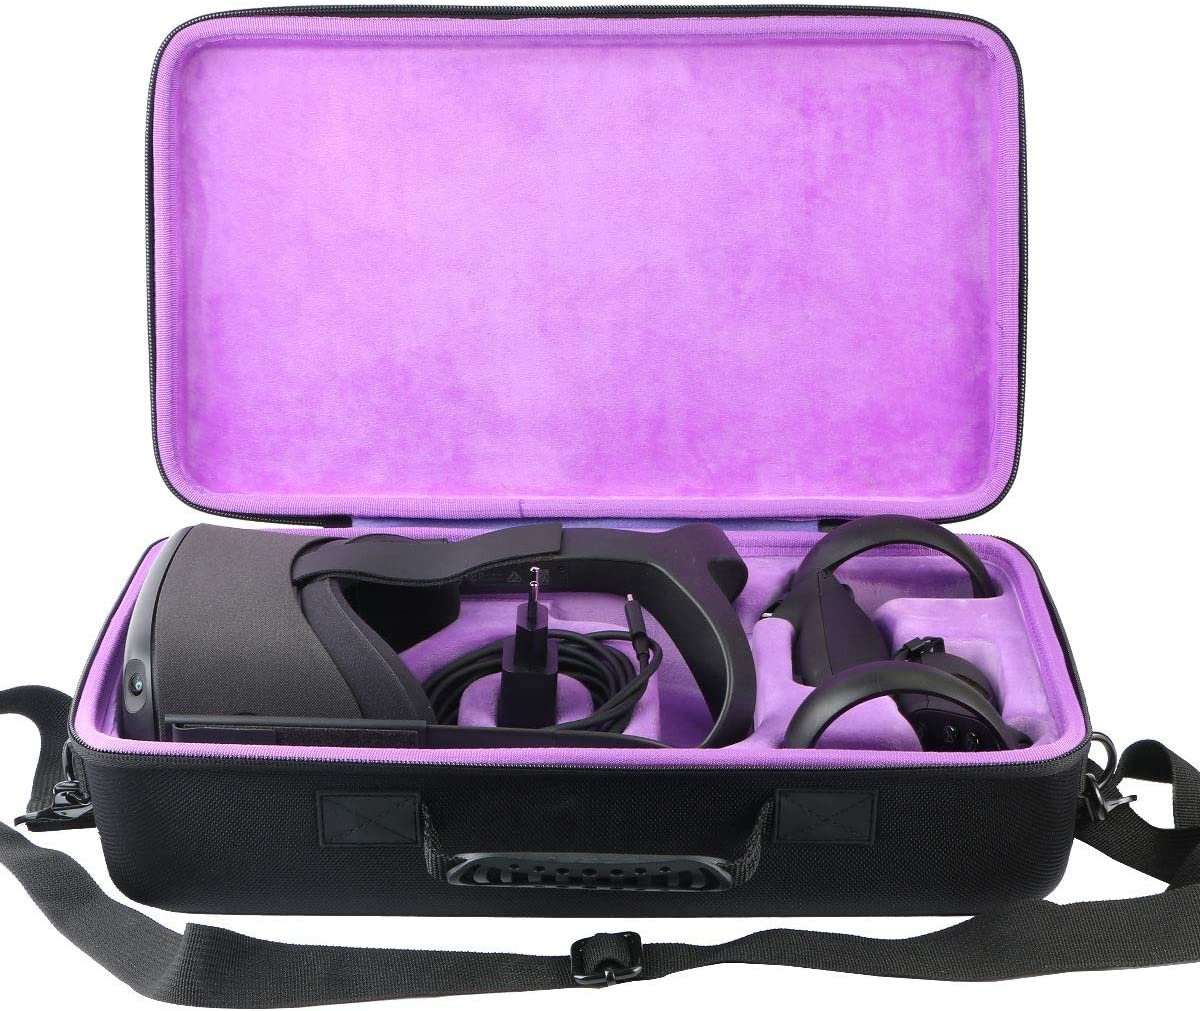 Purple Lining Khanka hard case carrying bag for Oculus Quest All-in-one VR Gaming Headset 128GB 64GB.